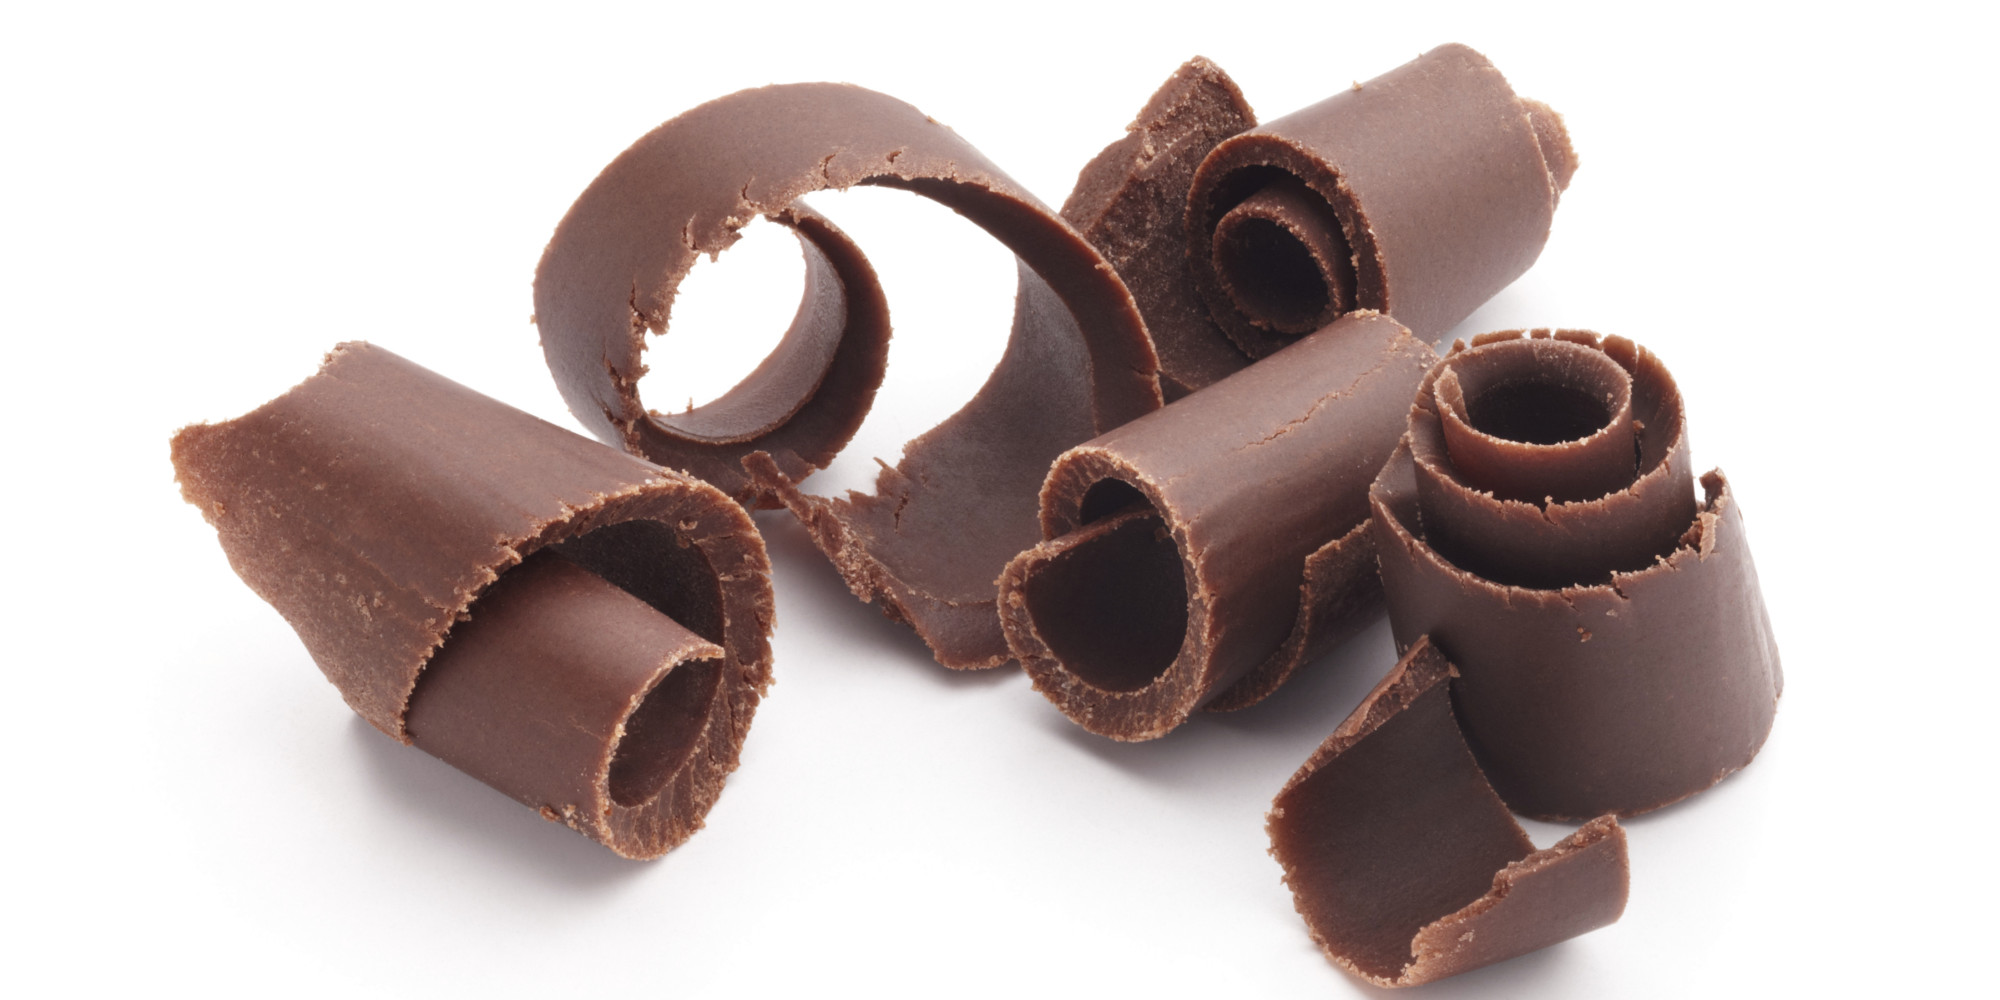 Chocolate Image CnMuqi - HD Wallpapers - Chocolate PNG HD